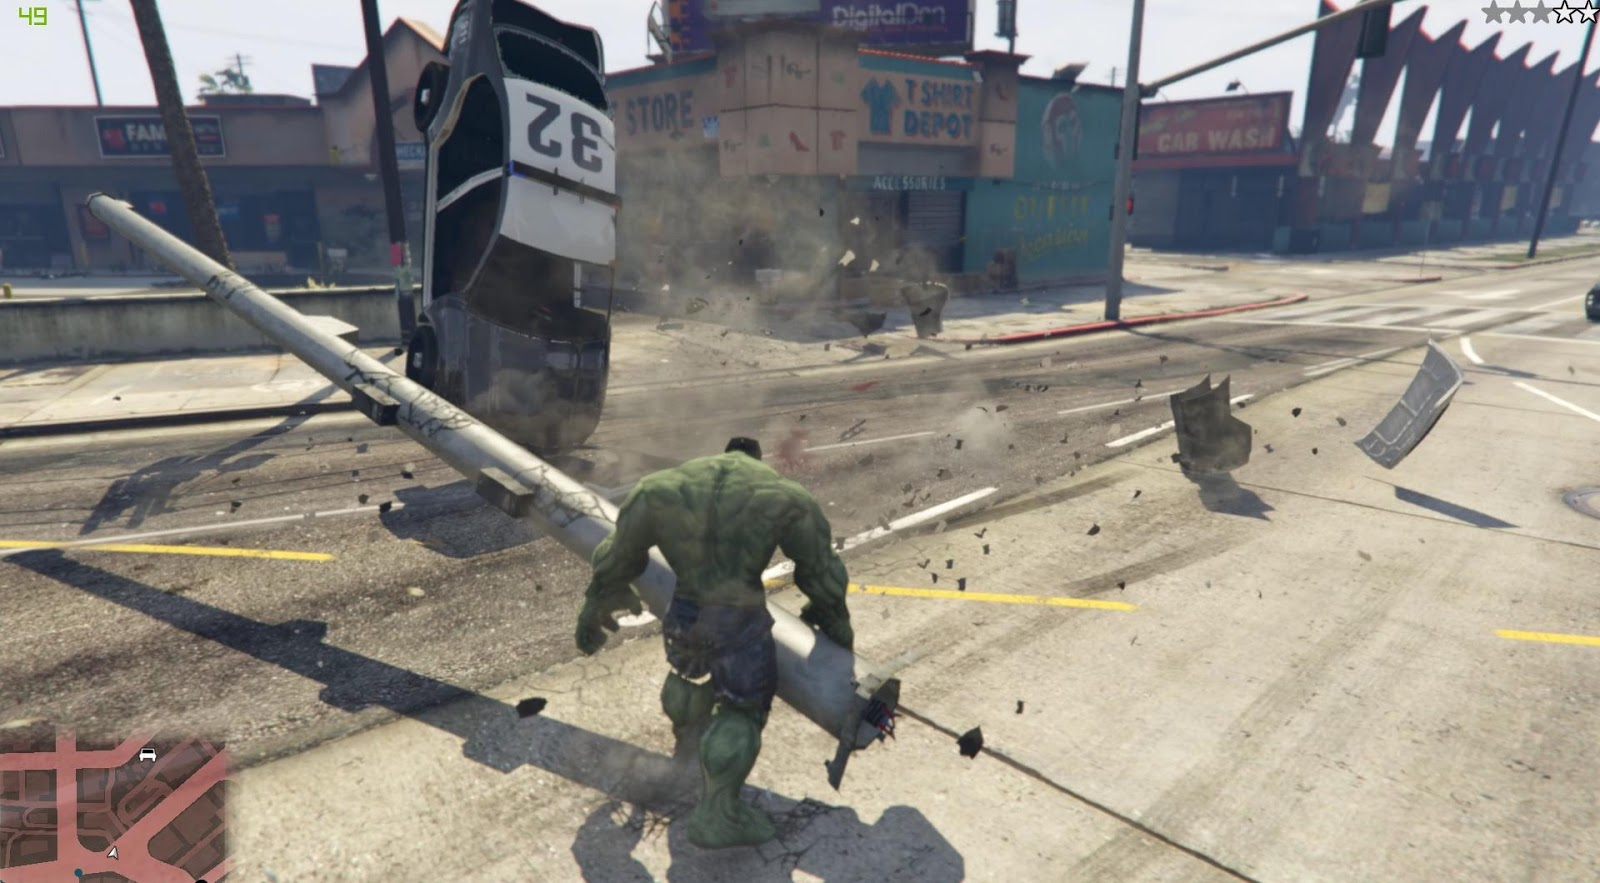 New Hulk mod available for download for Grand Theft Auto 5 - DSOGaming